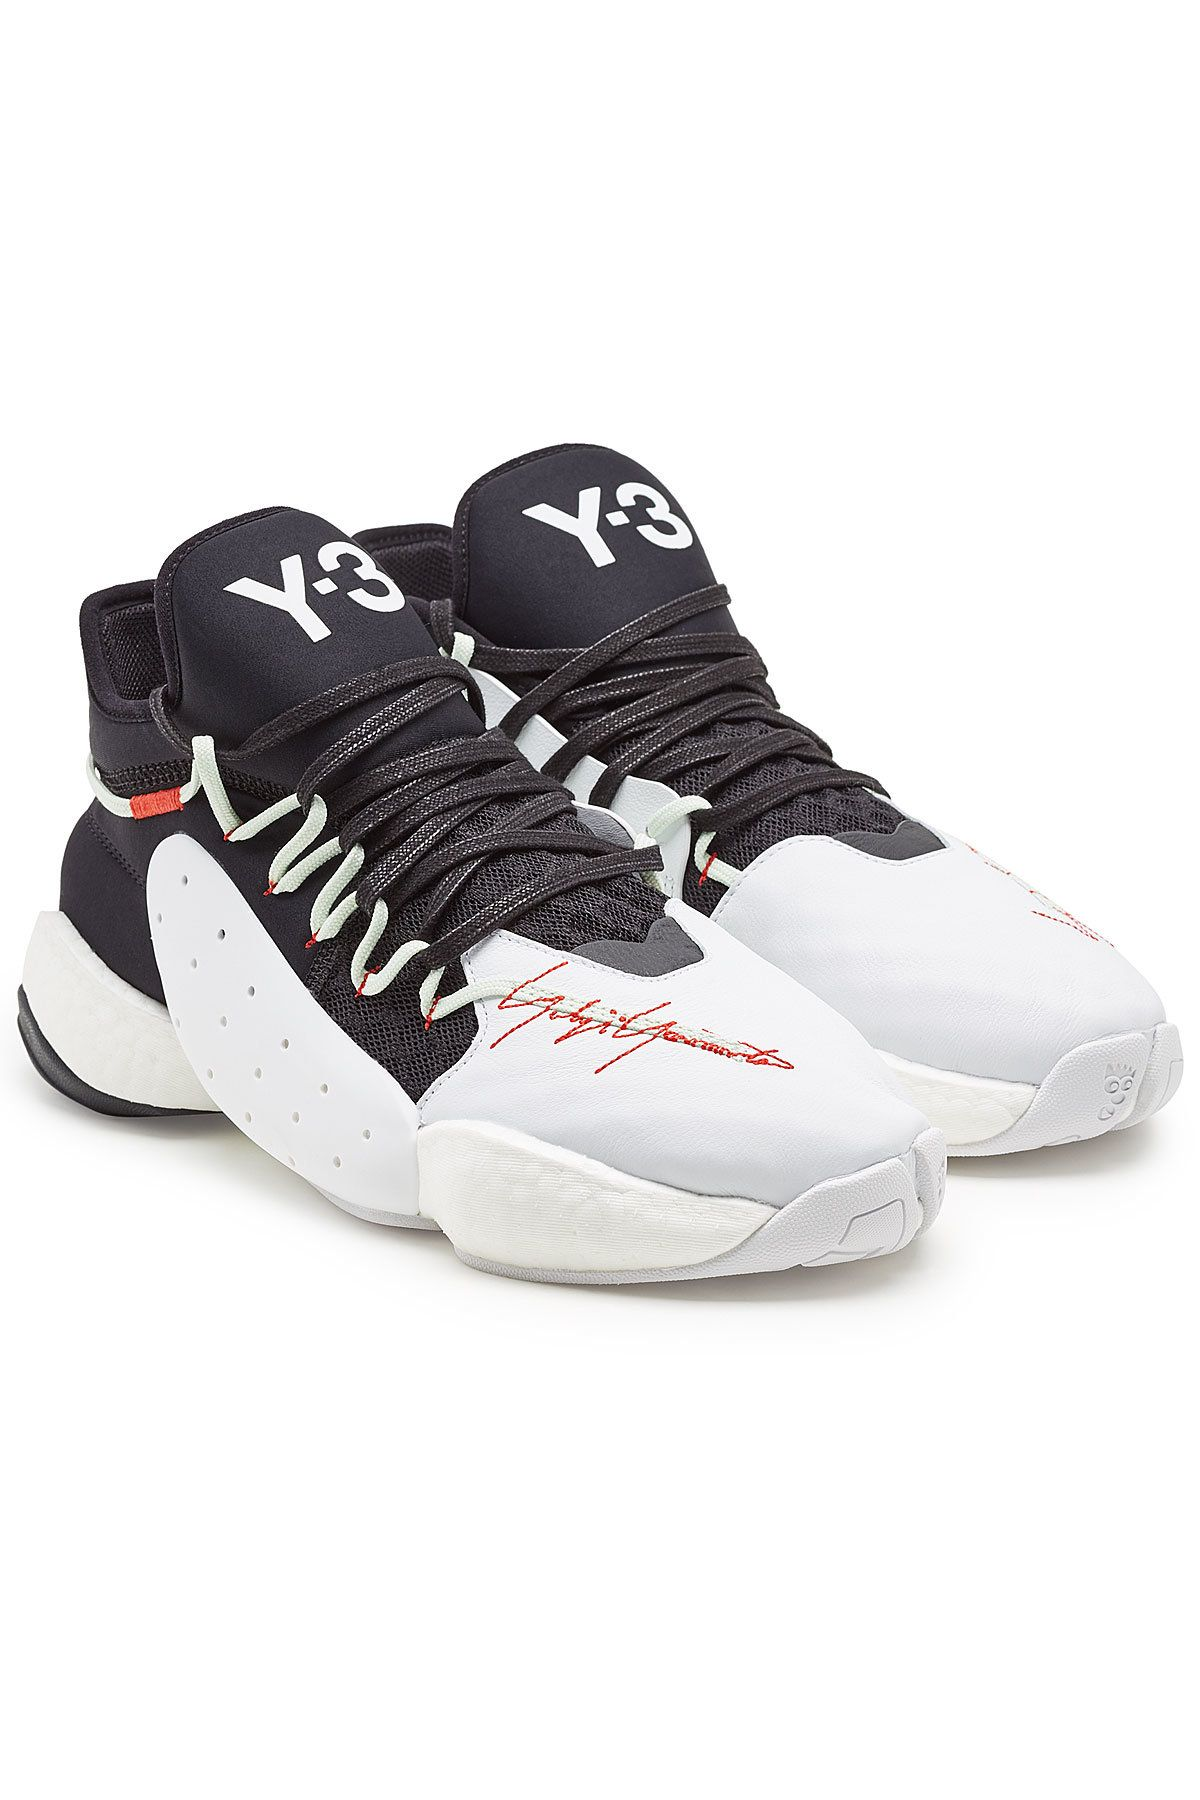 52cb32c5e38 Y-3 BYW BBALL SNEAKERS WITH LEATHER.  y-3  shoes